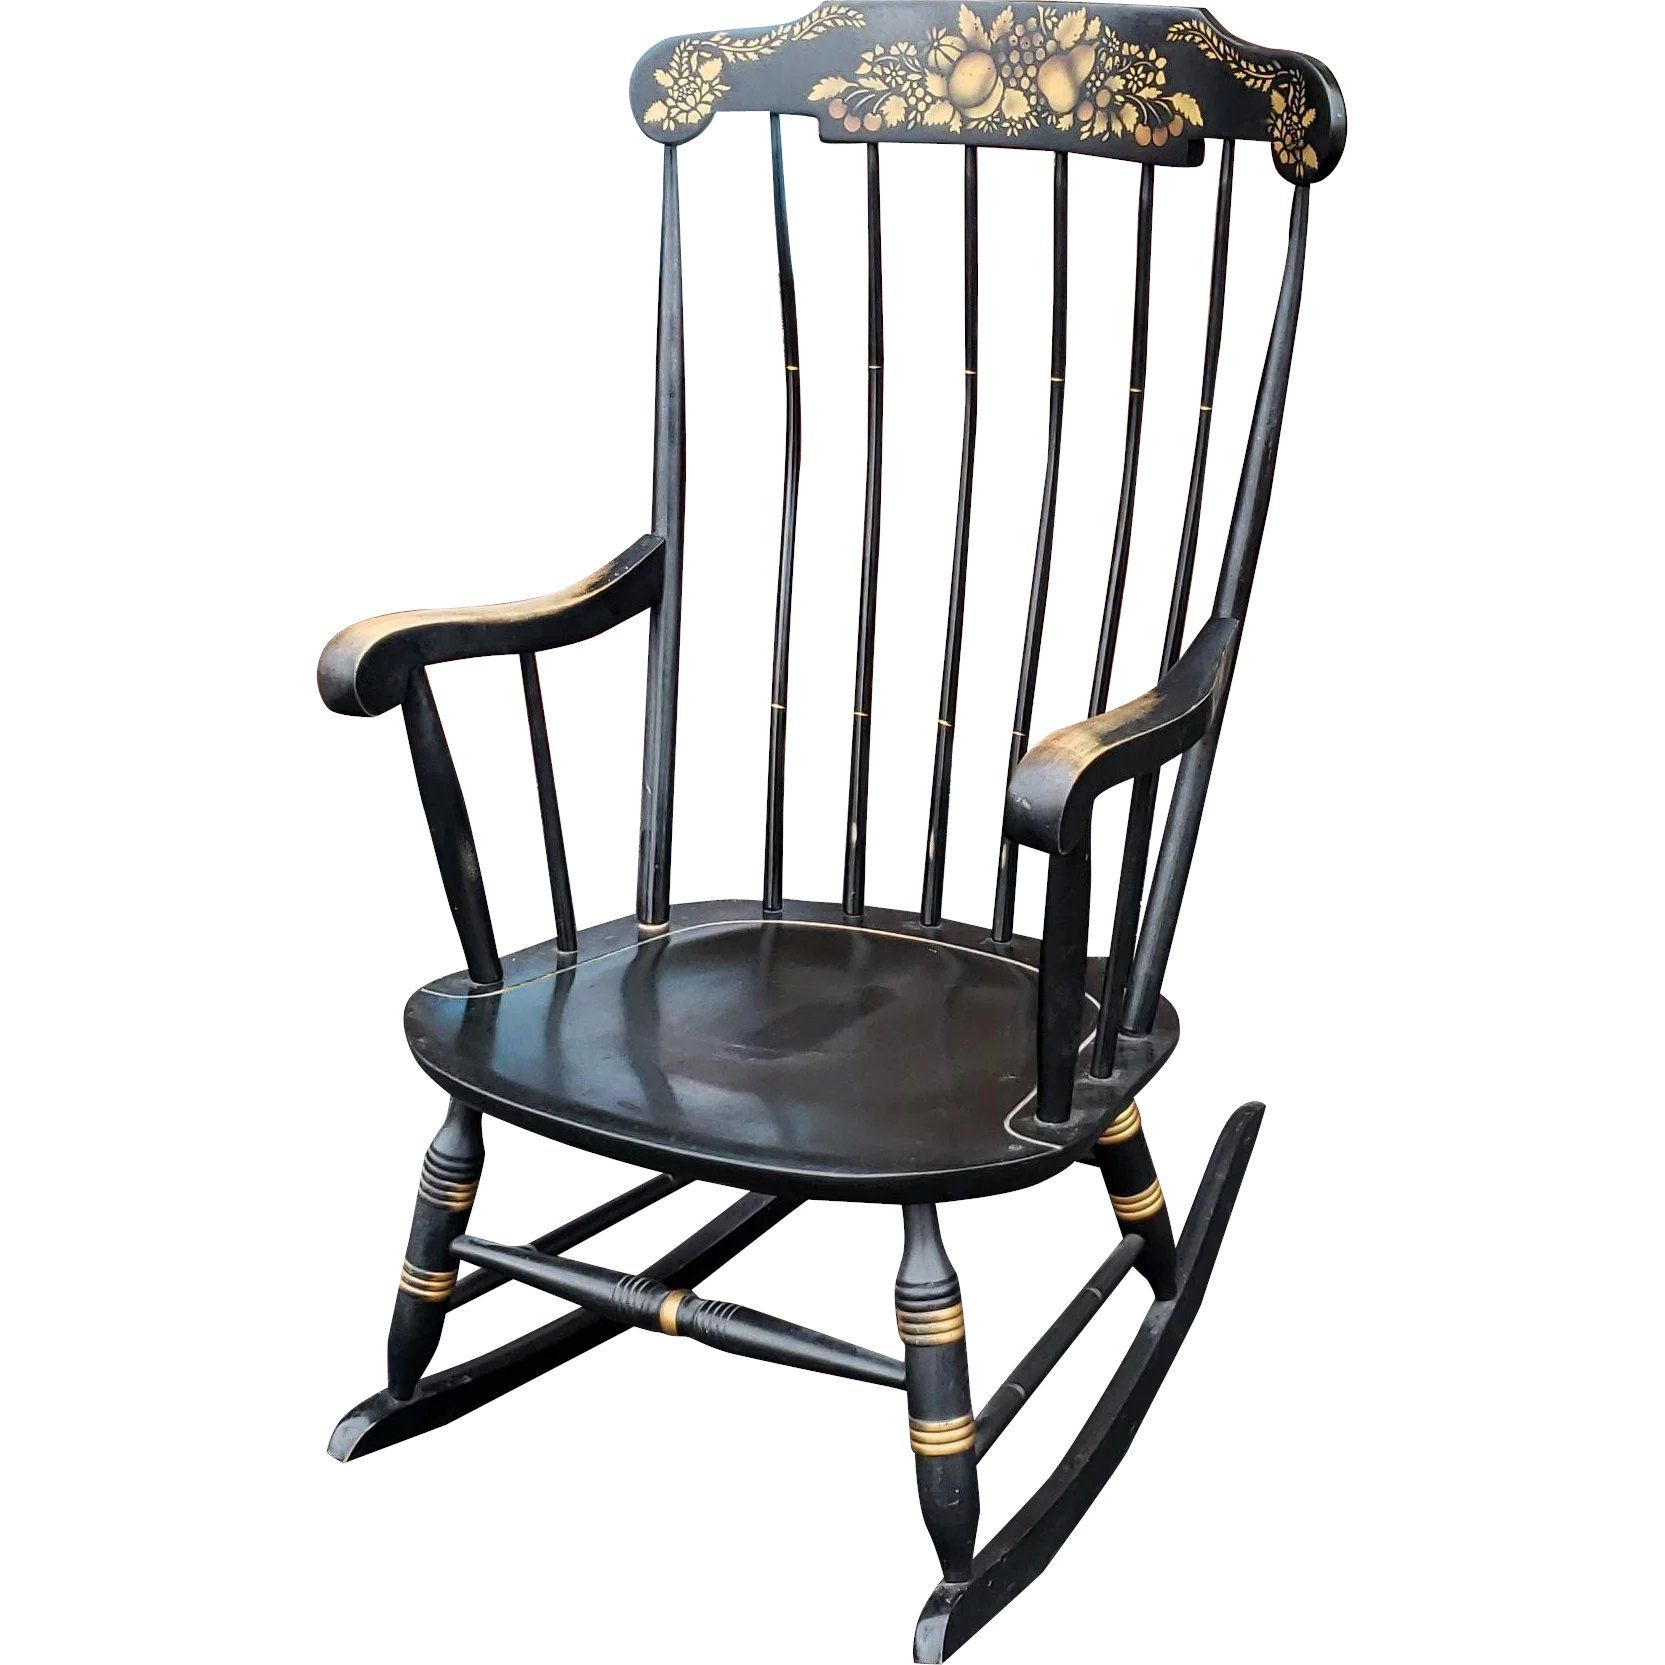 Vintage 1970s Black Hitchcock Style Painted Nichols Stone Co Rocking Chair Rocker Rocking Chair Nursery Chair Rocking Chair